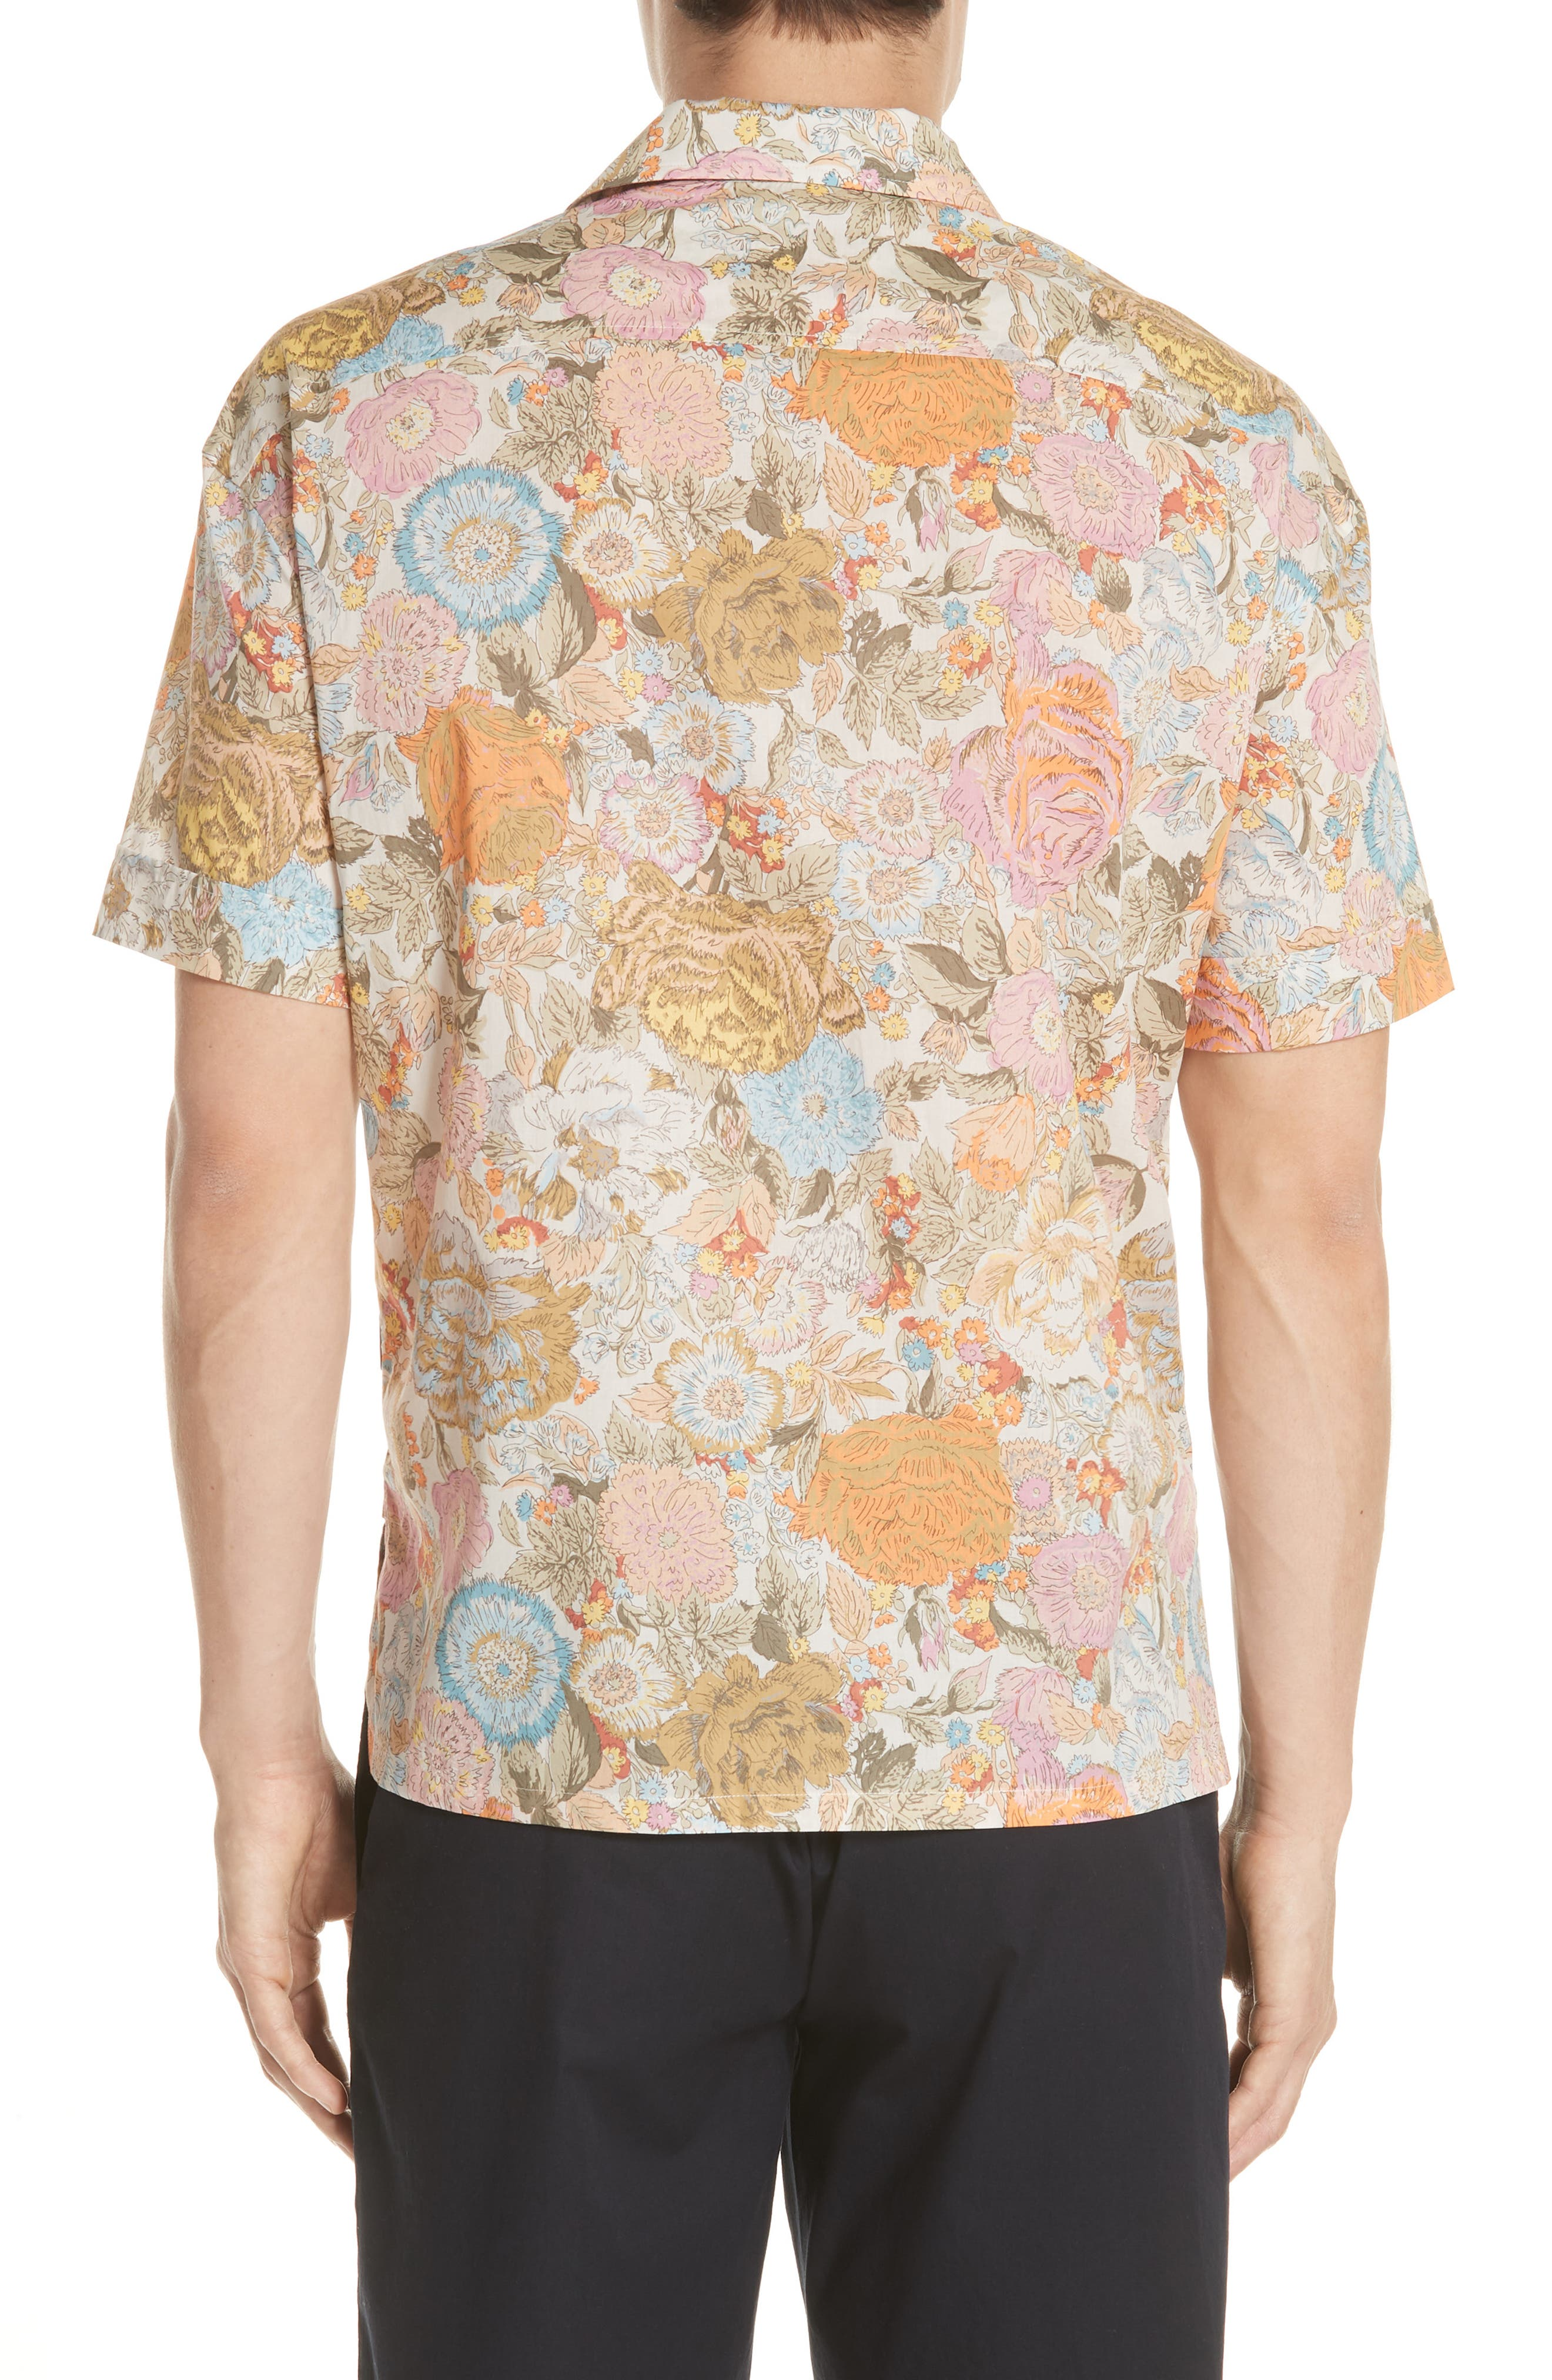 Harley Floral Print Shirt,                             Alternate thumbnail 3, color,                             Bright Orange